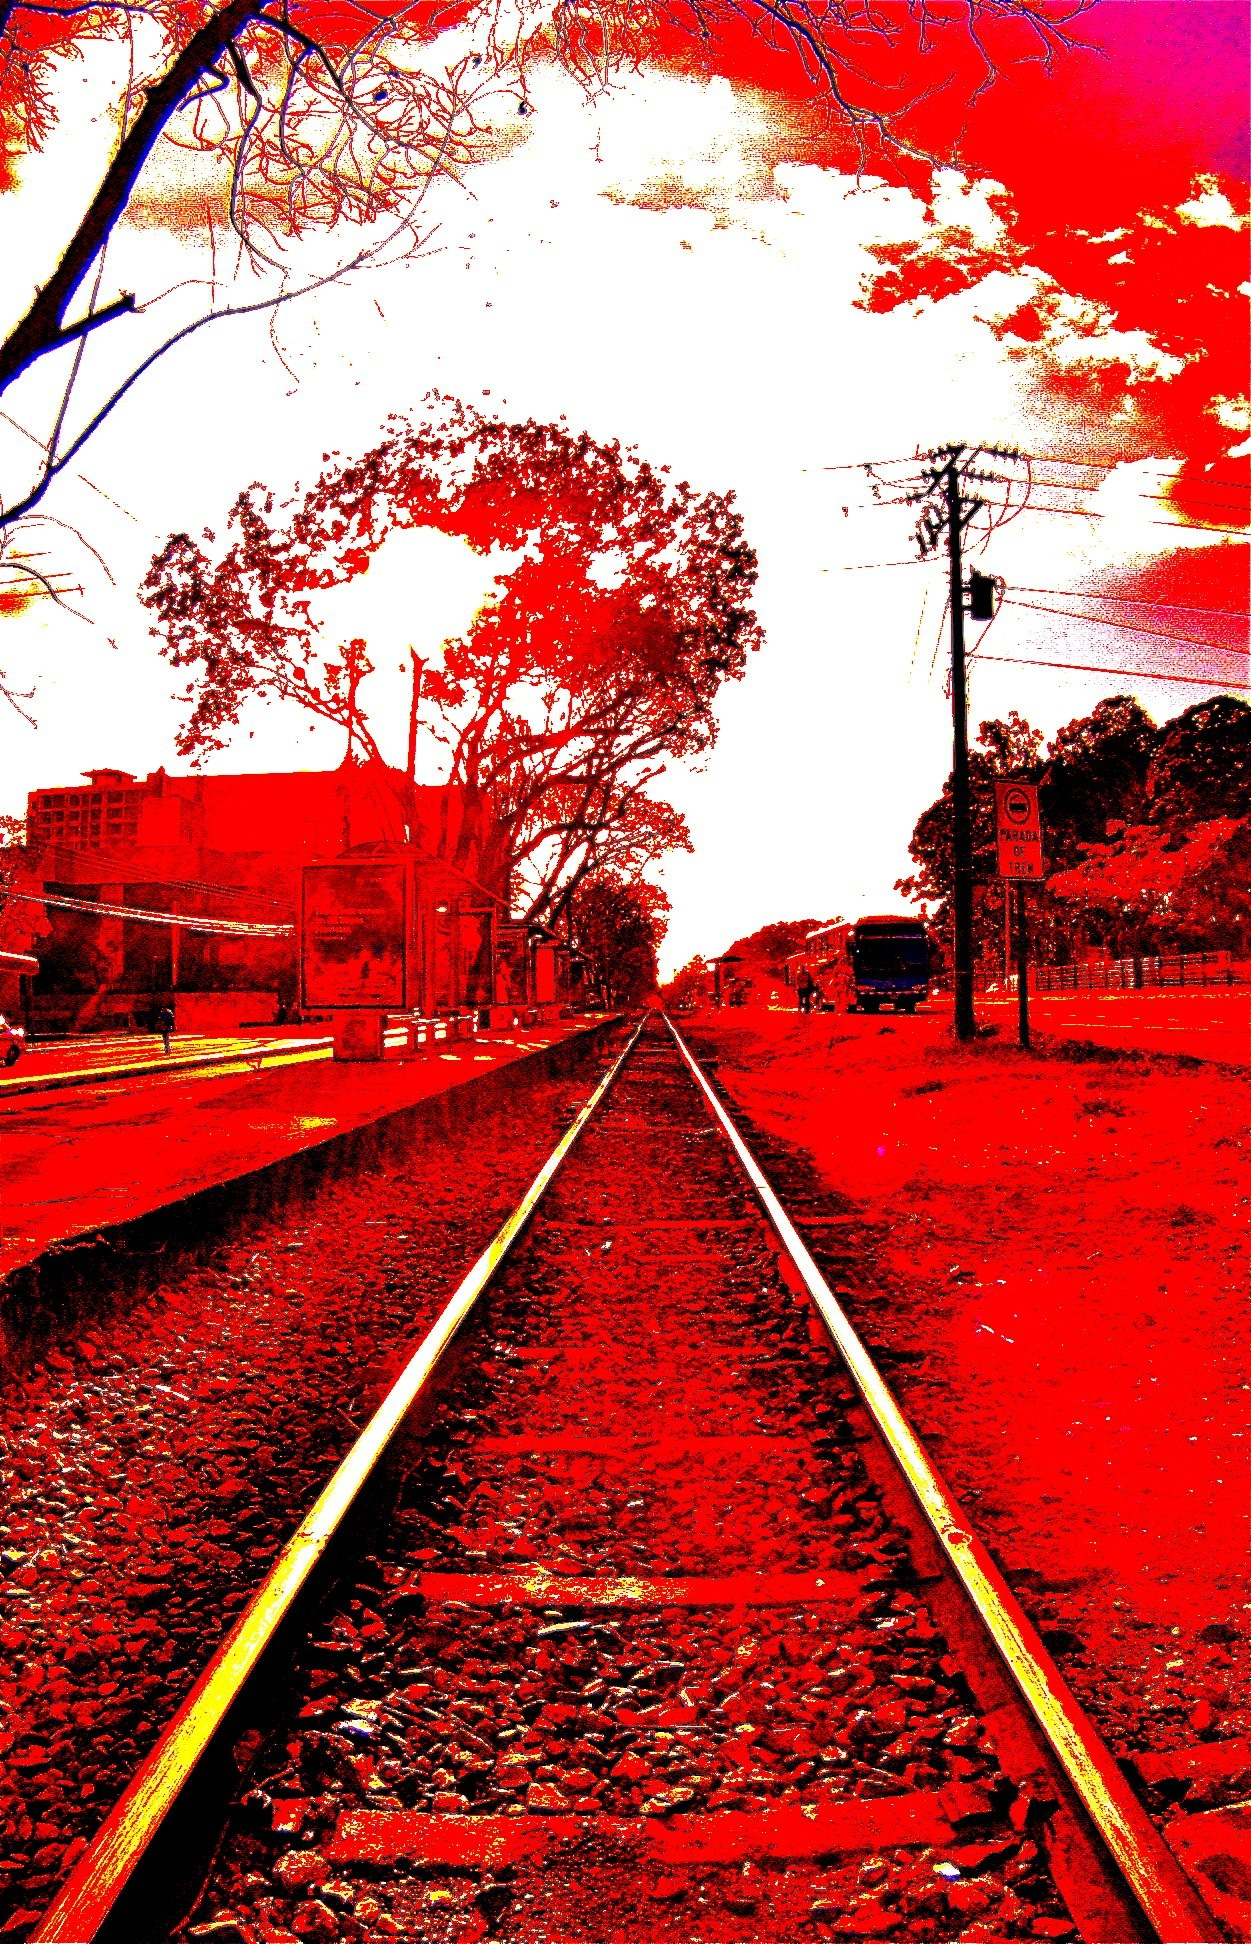 Blood On The Tracks  by Jimmy James Hames